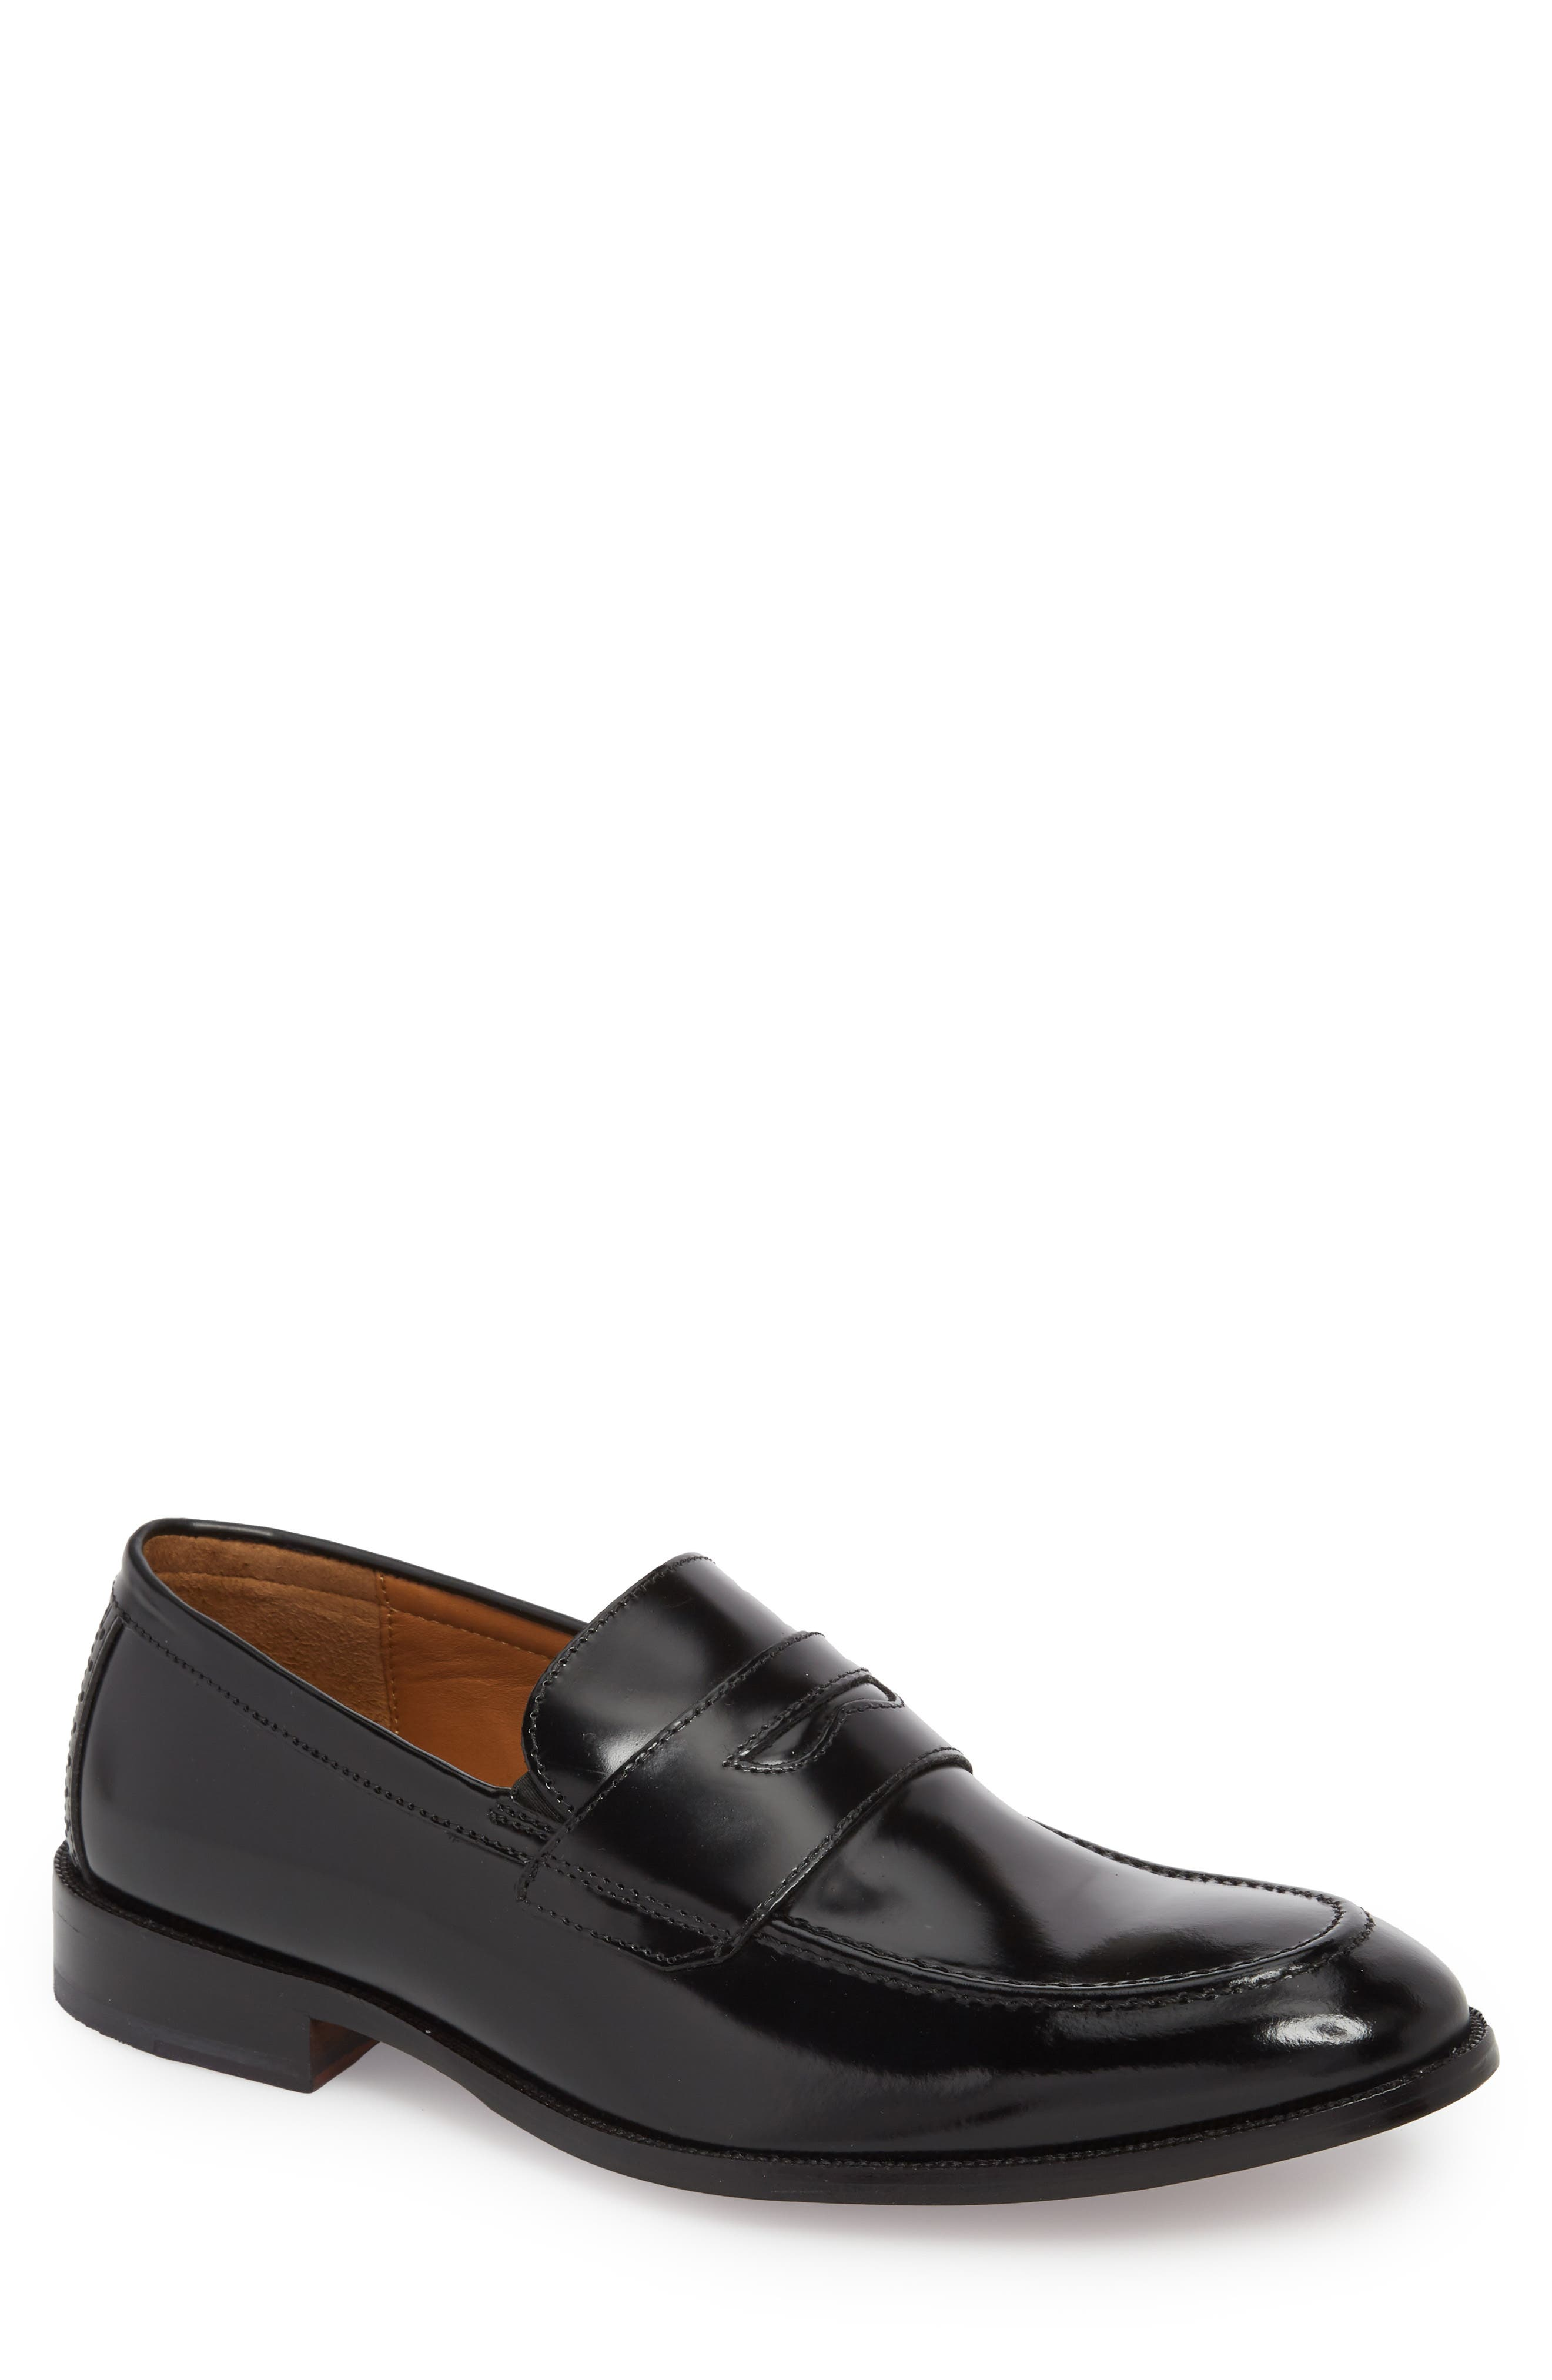 Bradford Penny Loafer,                             Main thumbnail 1, color,                             Black Leather